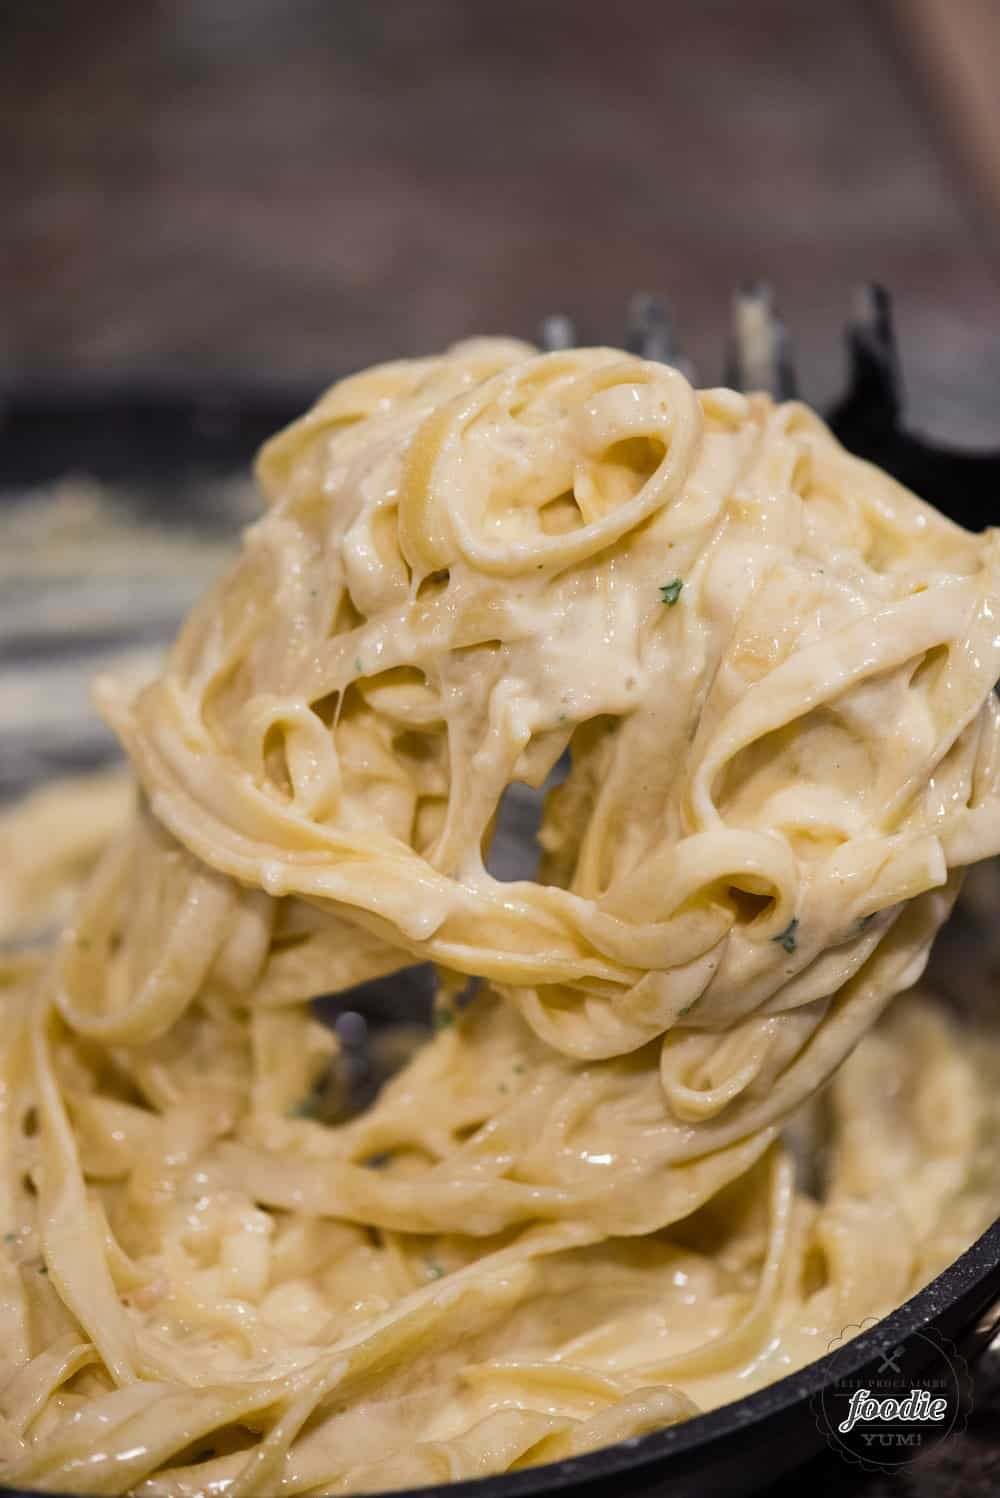 Alfredo sauce is a rich and creamy white sauce made with garlic, butter, heavy cream, and parmesan. This savory cheesy sauce infuses garlic into the butter and can be used with all kinds of pasta or even on top of vegetables. This recipe is different, I dare say better, than an alfredo sauce recipe with cream cheese.